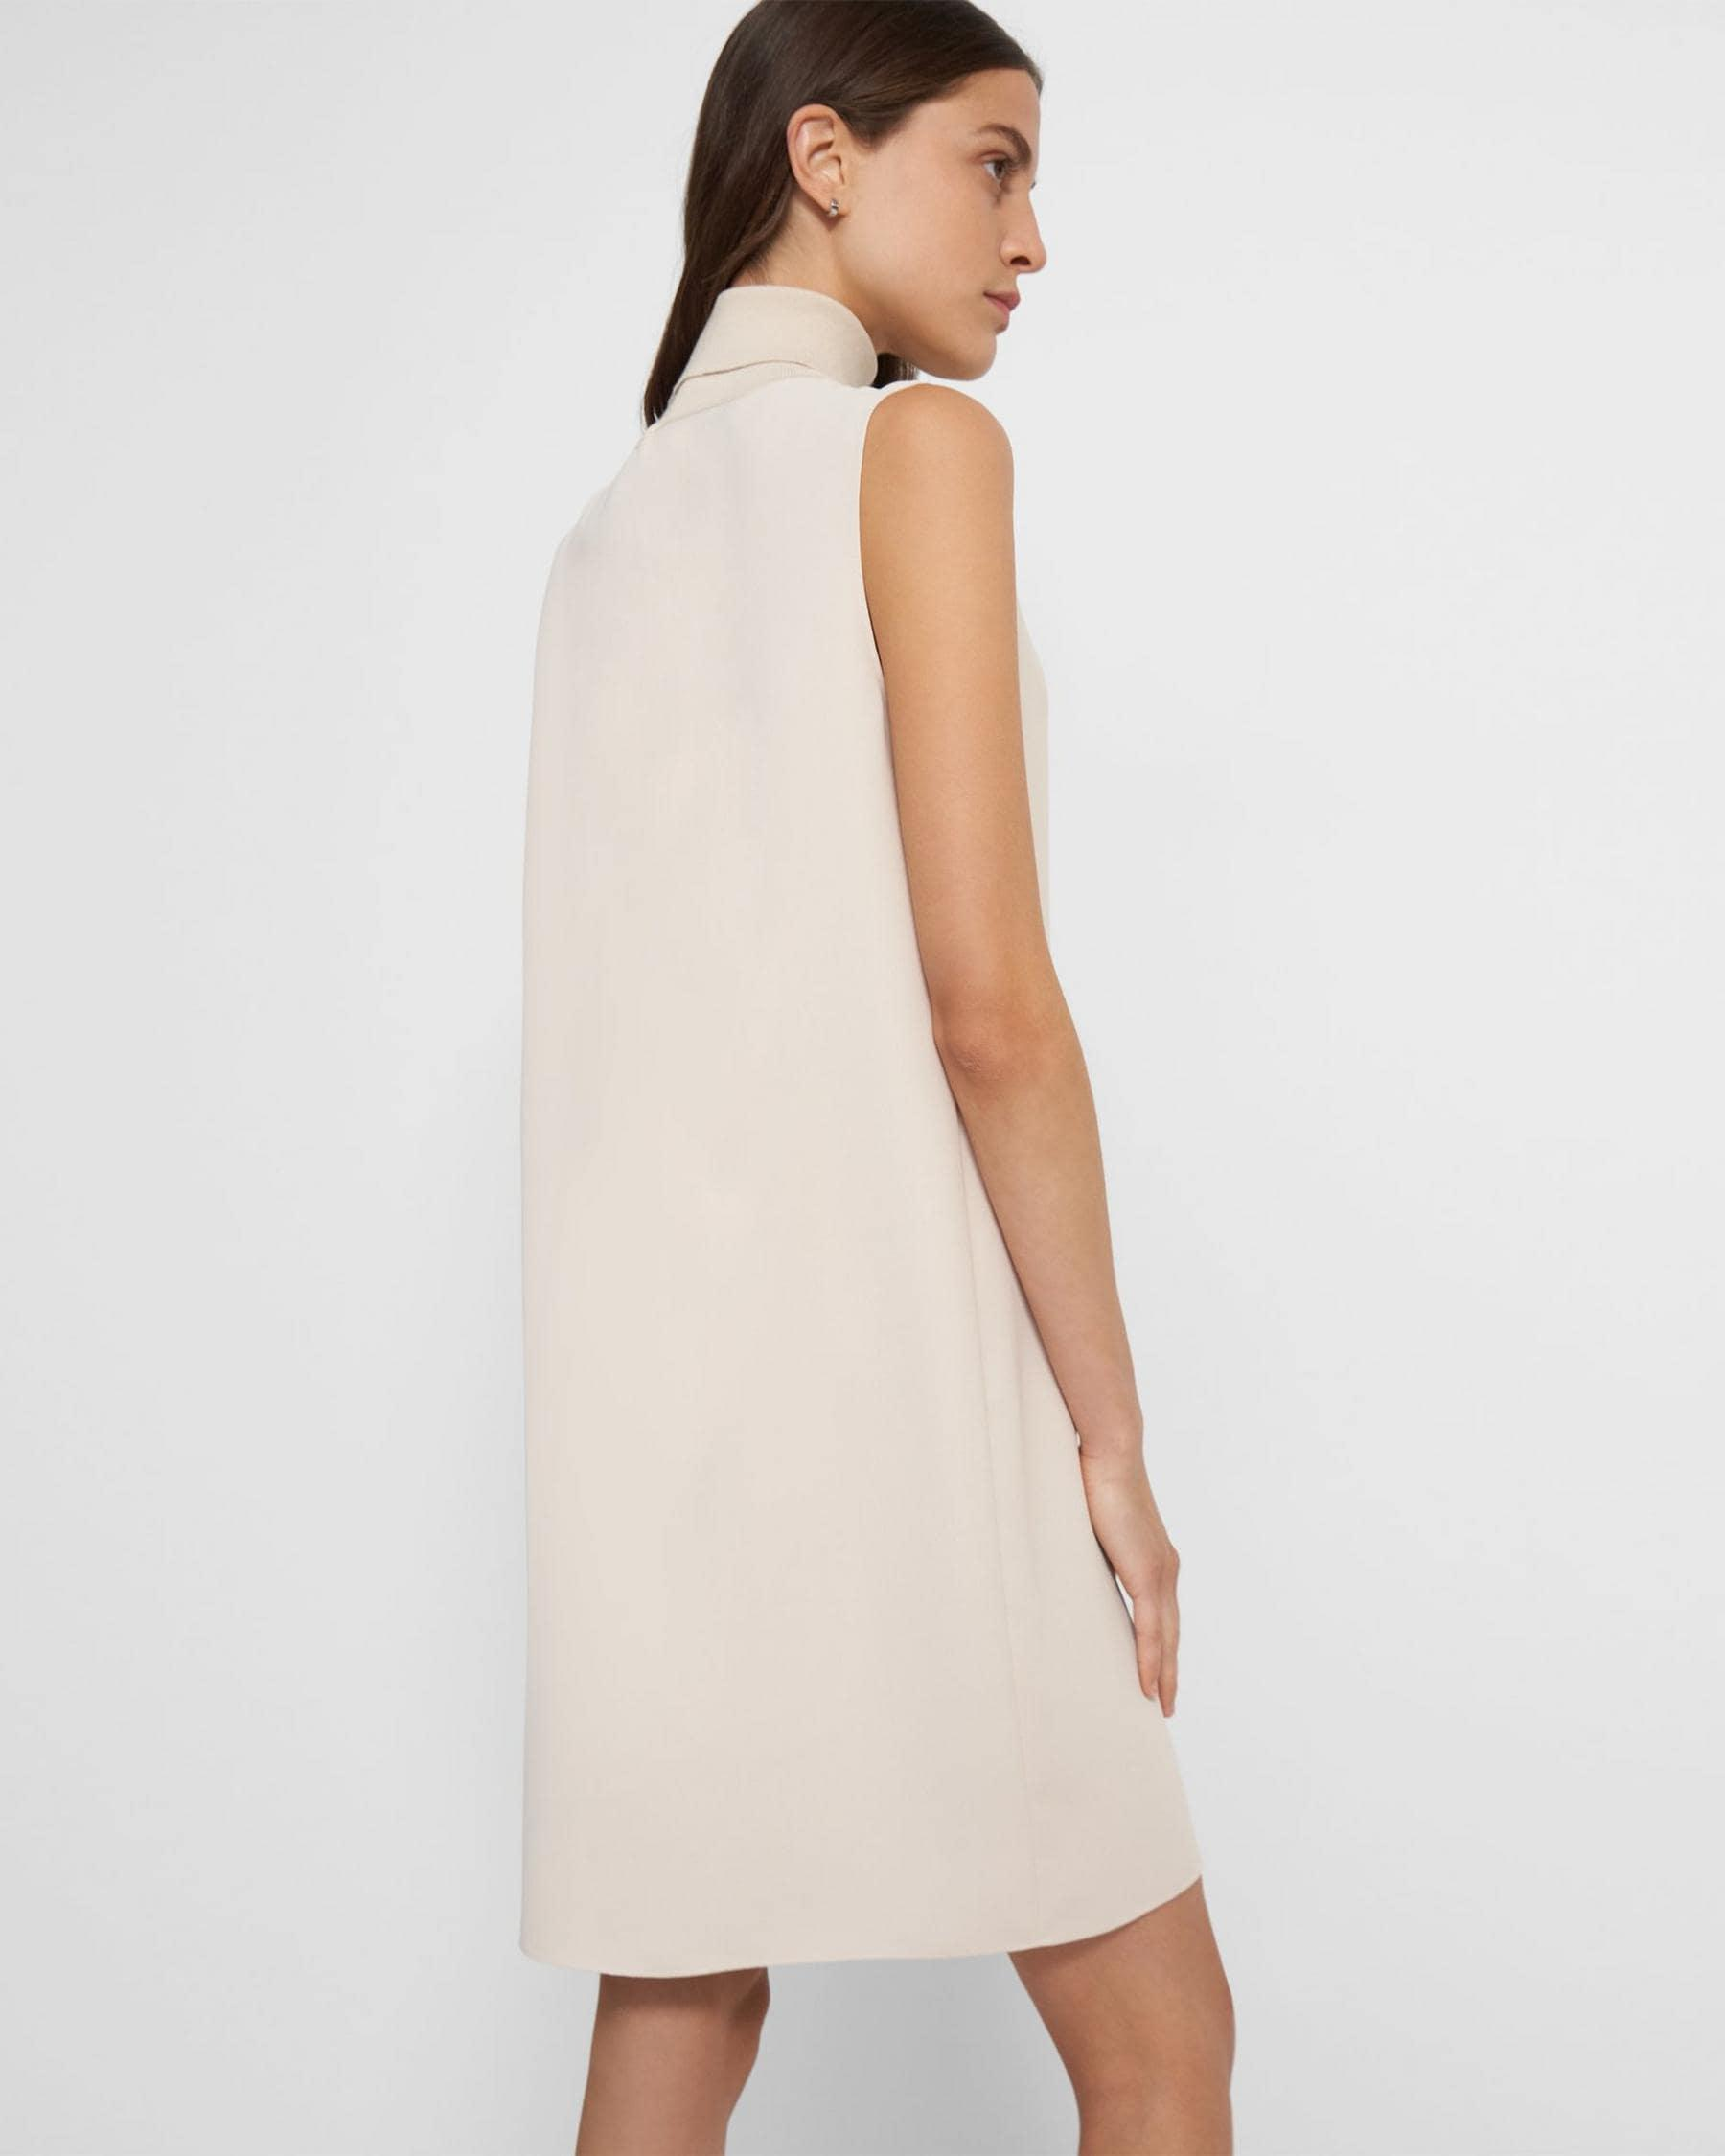 Roll Neck Dress in Crepe 3